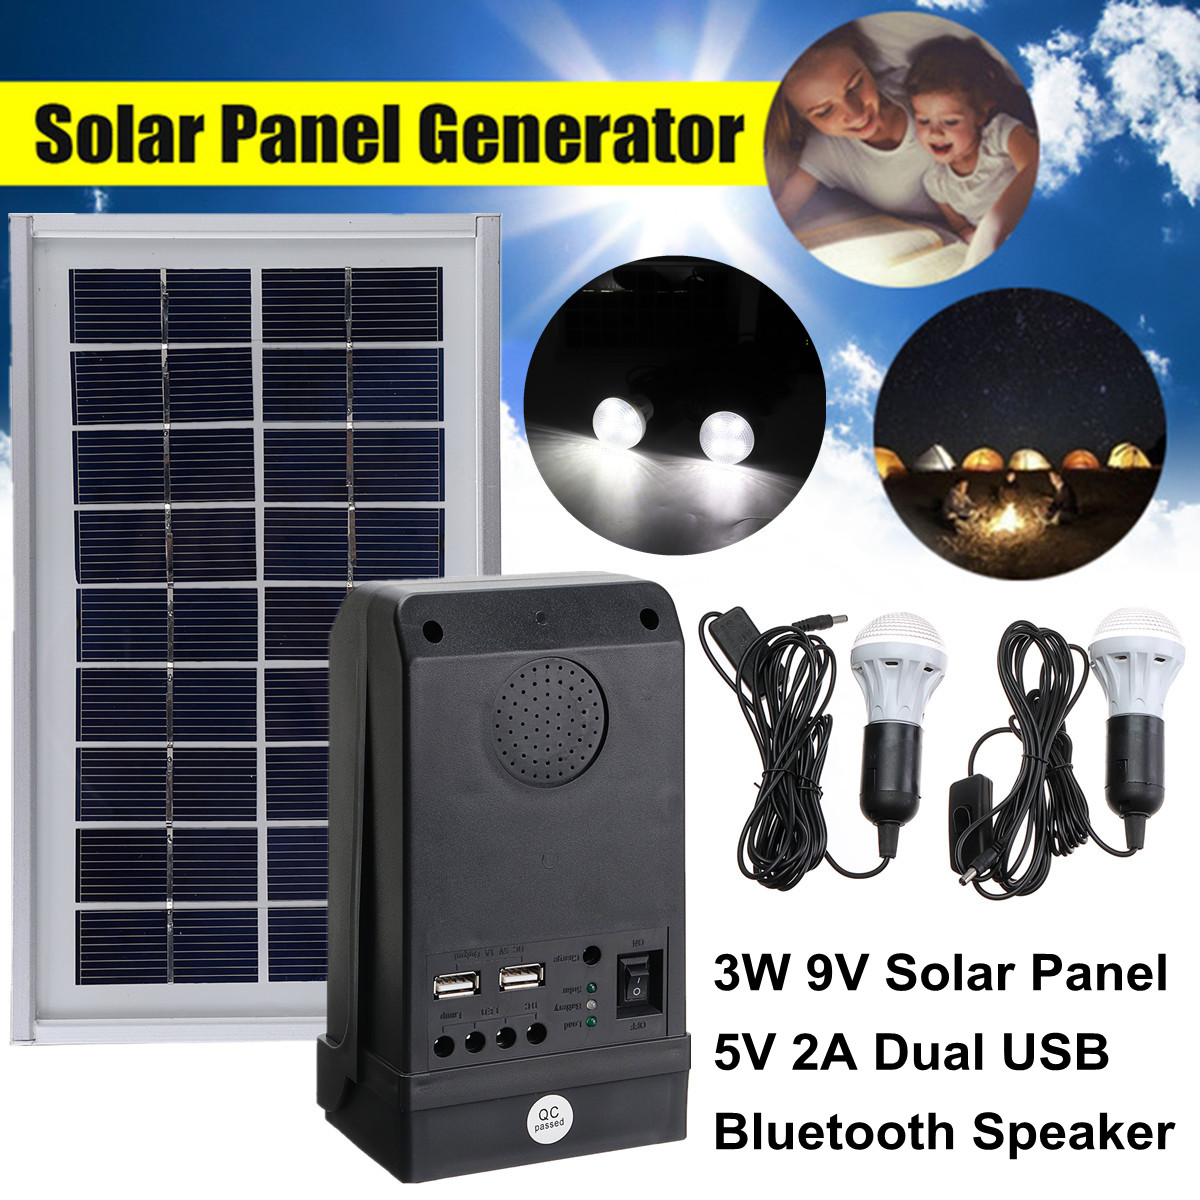 5V 2A Solar Panel Power Generator LED Light USB Charger System with Bluetooth Speaker Reusable Durable Camping Large Capacity diy 5v 2a voltage regulator junction box solar panel charger special kit